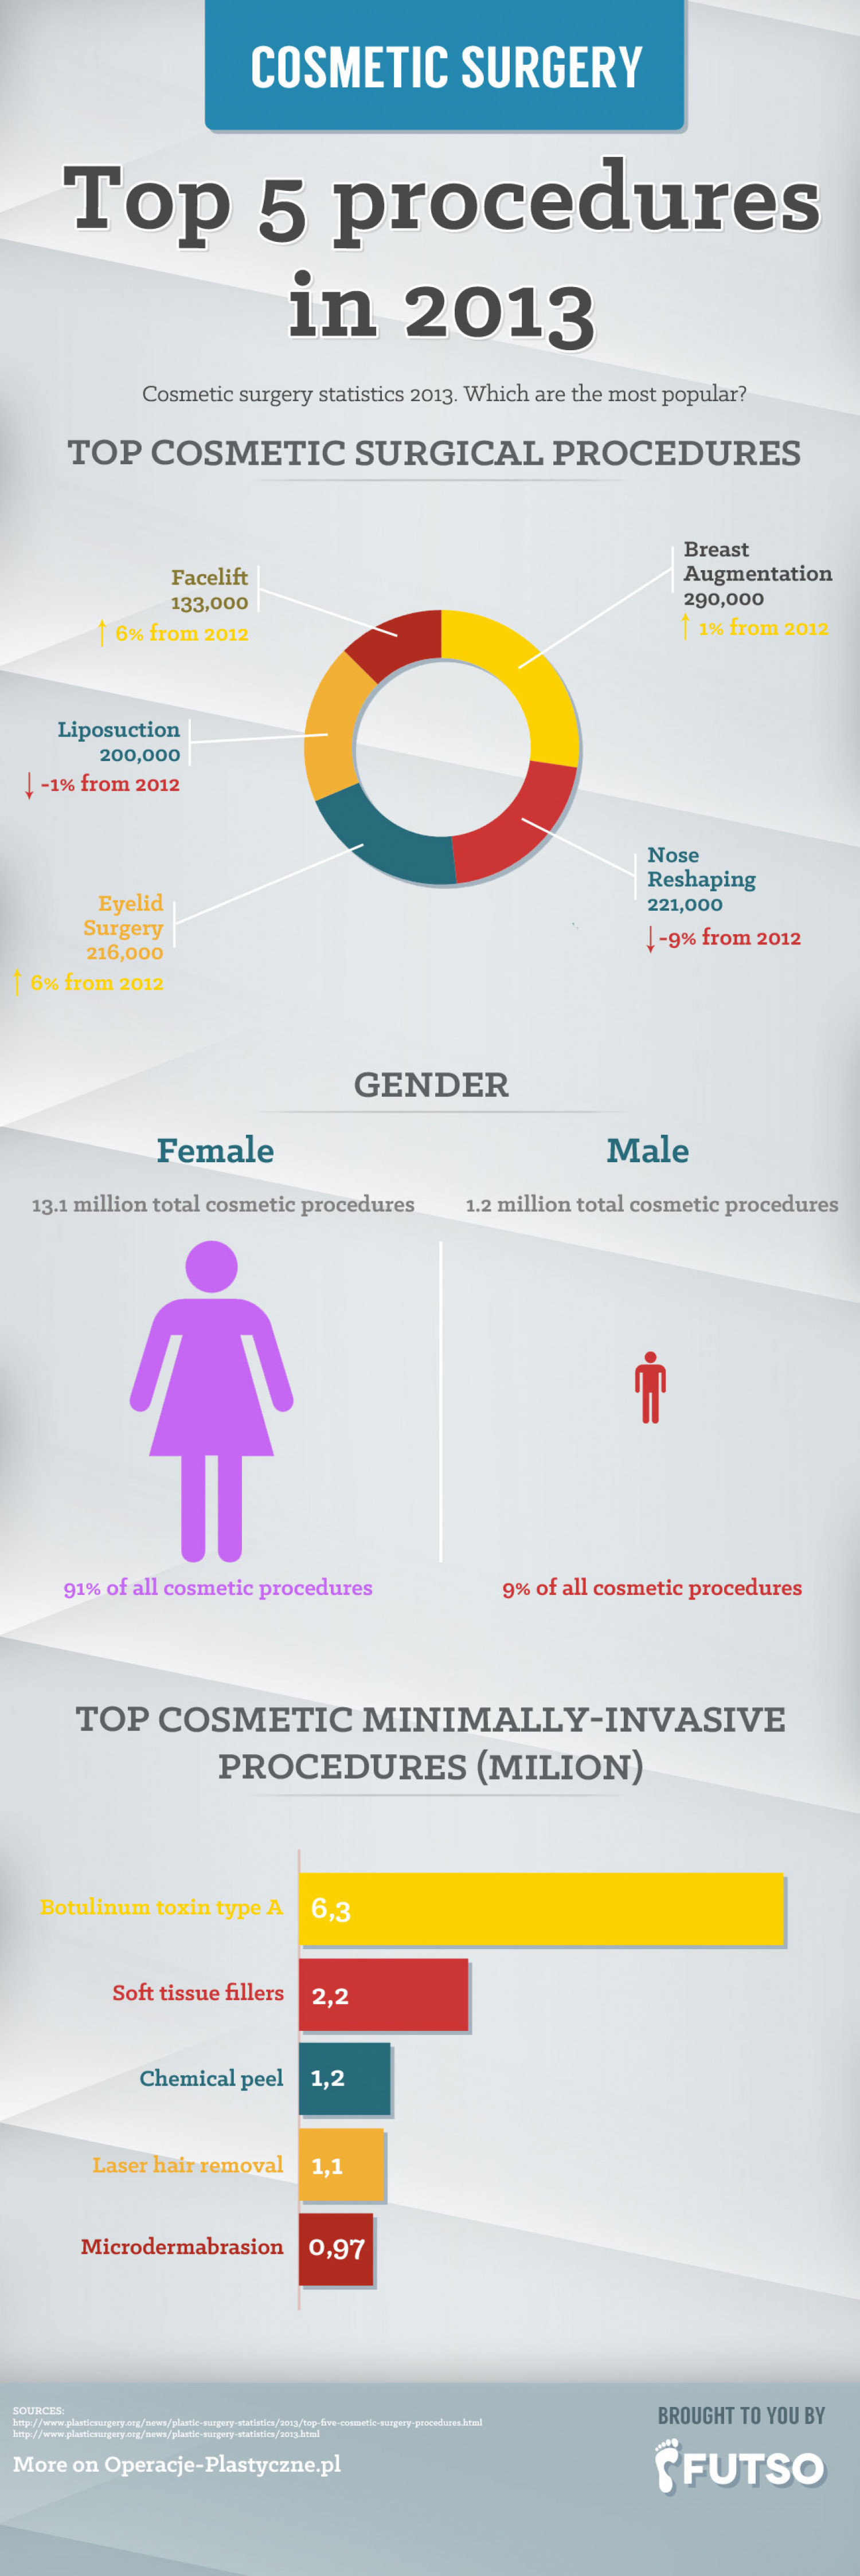 Cosmetic Surgery Top 5 Procedures in 2013 Infographic